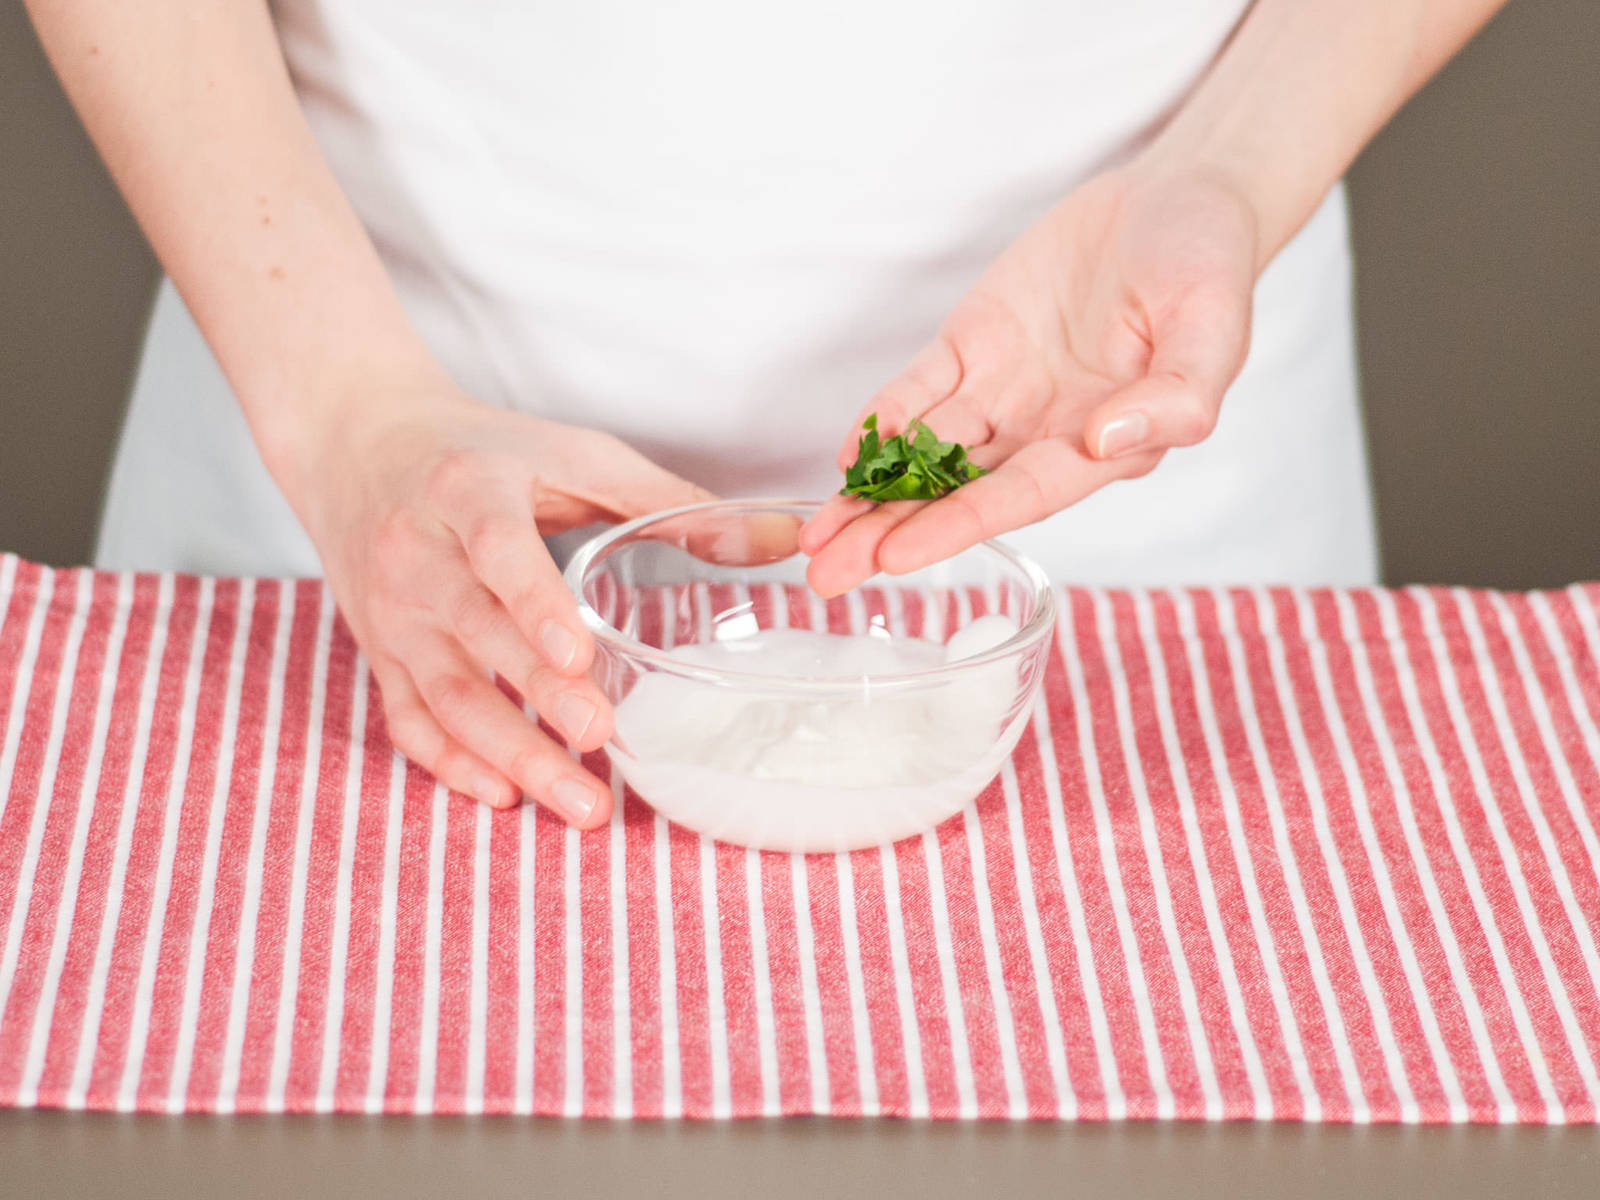 Finely chop parsley and chives. Mix herbs with yogurt and cream cheese. Season with salt and pepper to taste. Arrange items in your child's lunchbox or serve right away.